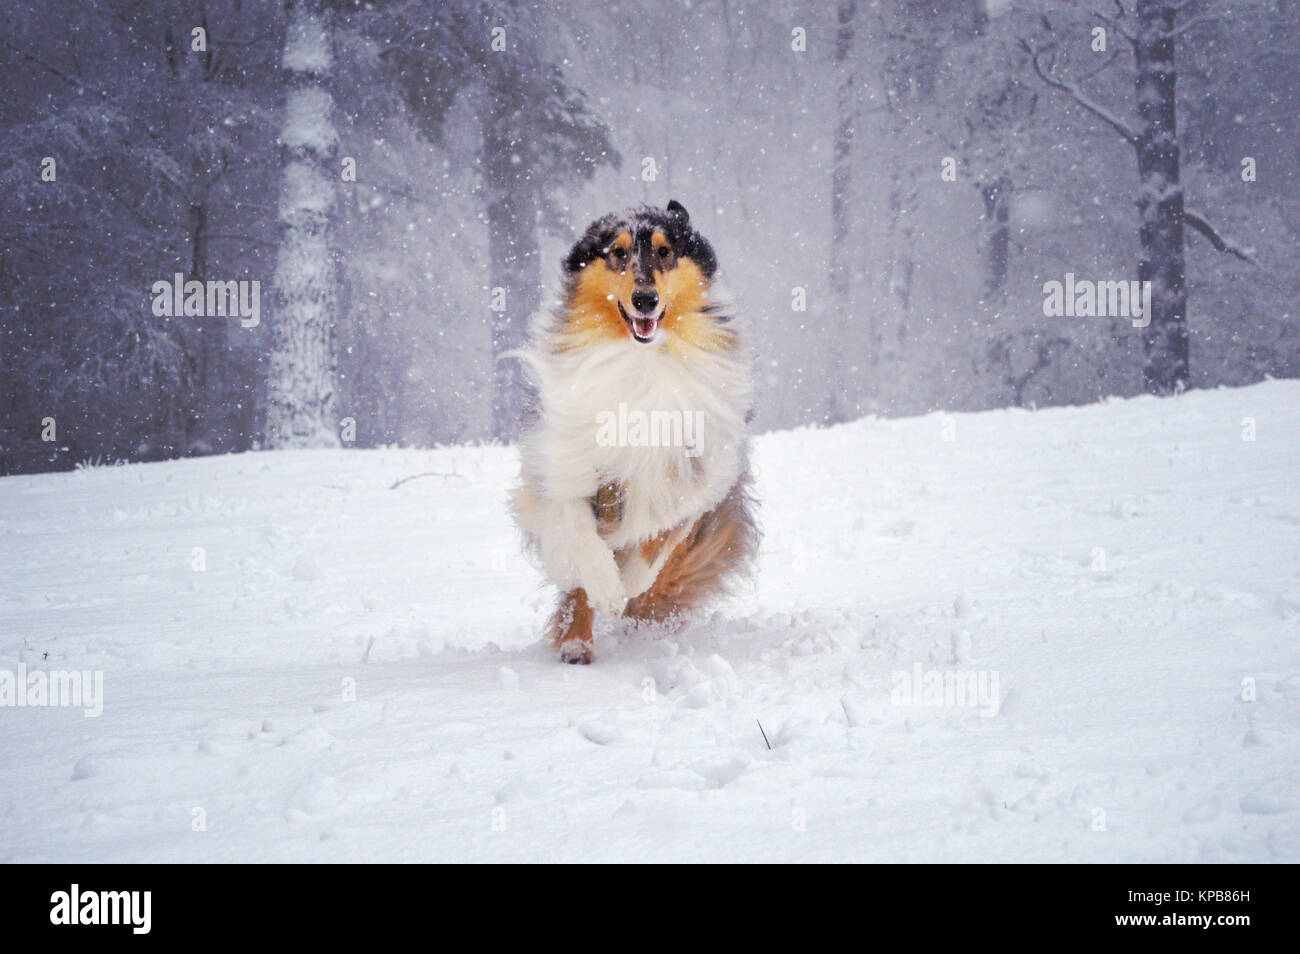 Blue merle rough collie dog running through the snow at Leith Hill, Dorking, December 2017. Snow-covered pine woodland - Stock Image